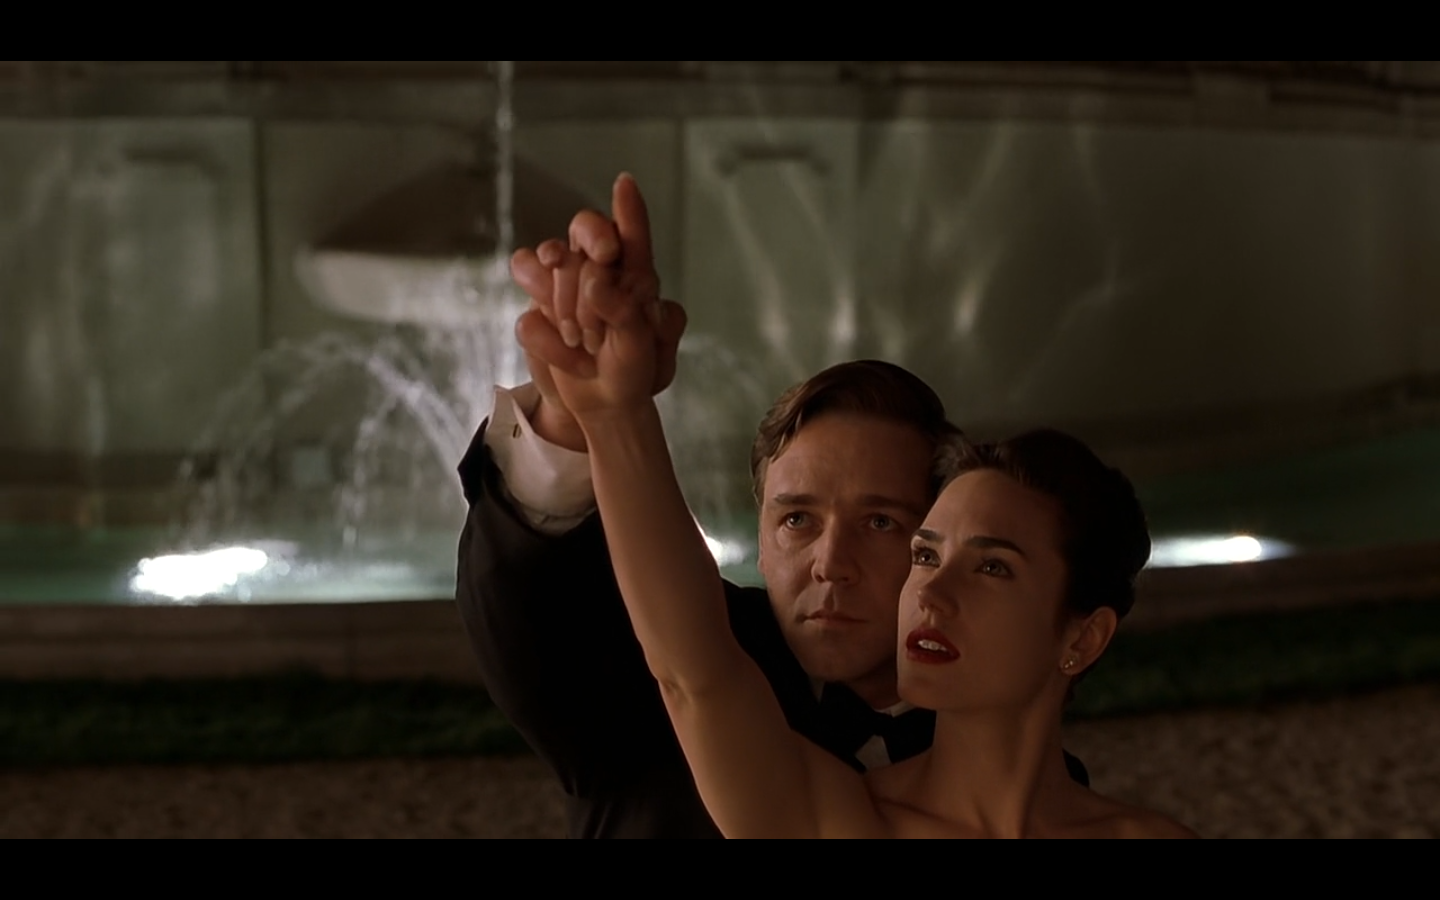 John Nash, Ron Howard, a Beautiful mind, Russell Crowe, Jennifer Connelly